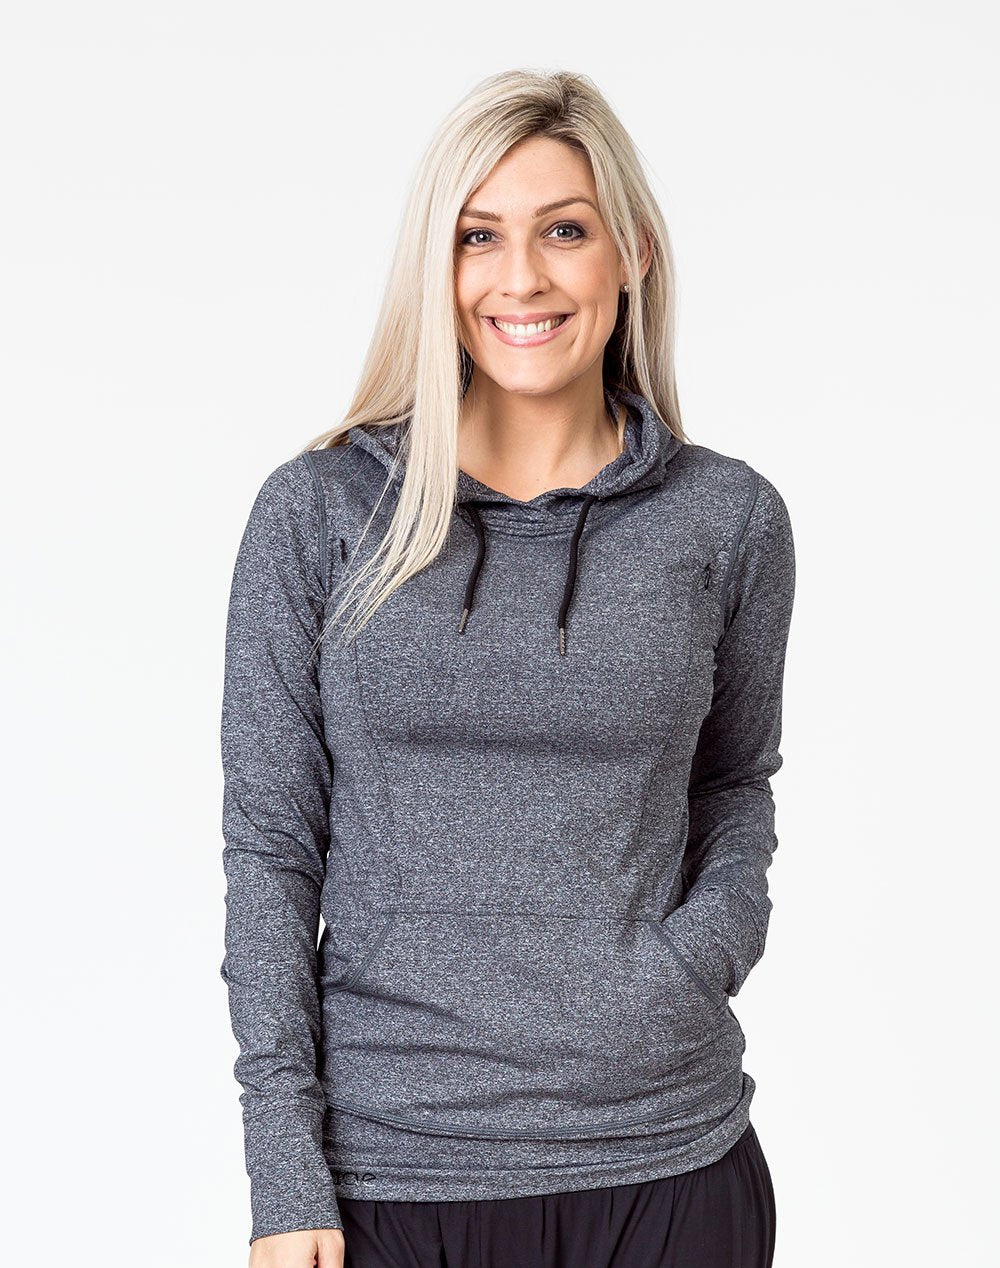 front view of an active mum wearing a grey activewear breastfeeding hoodie